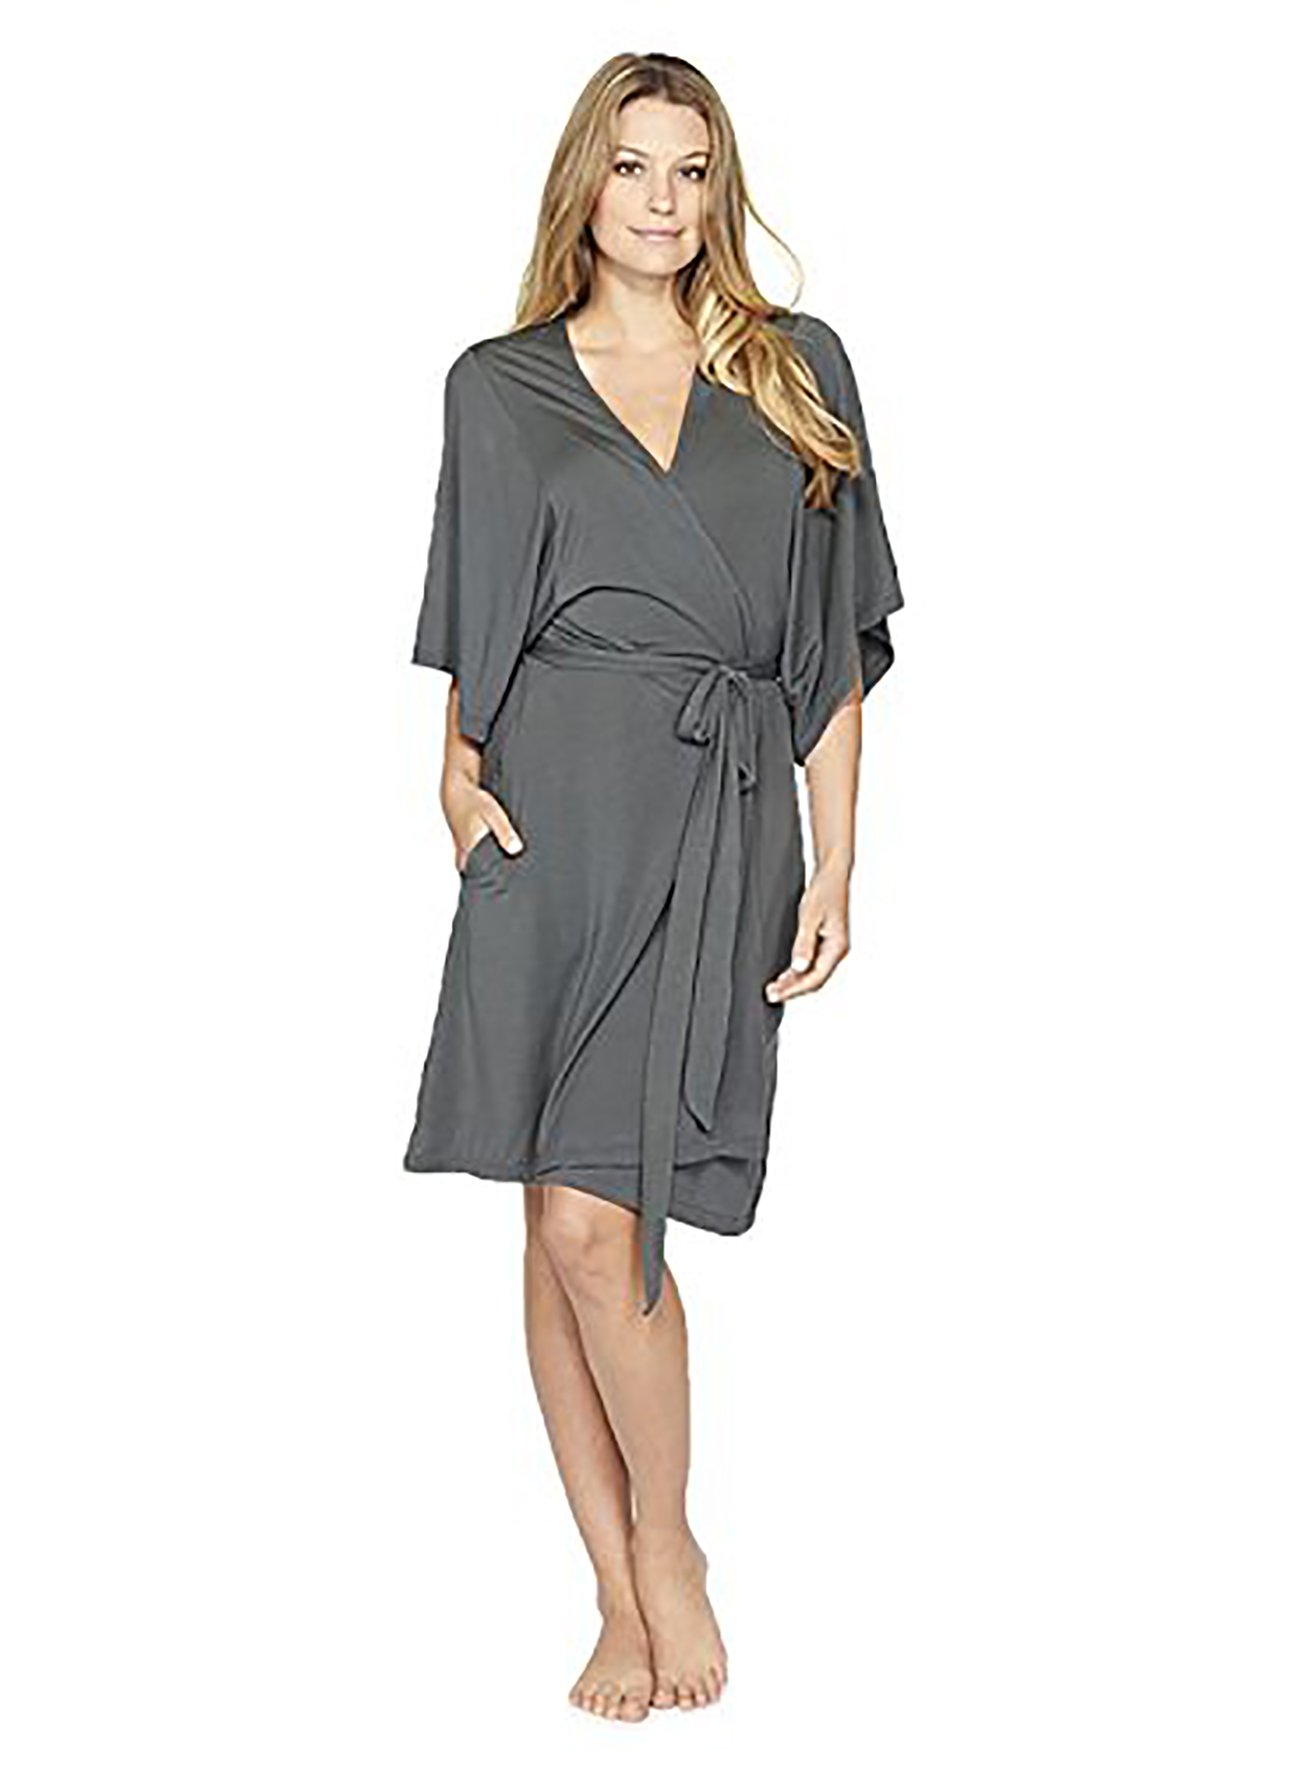 Barefoot Dreams Luxe Milk Jersey Short Robe - Graphite, Large